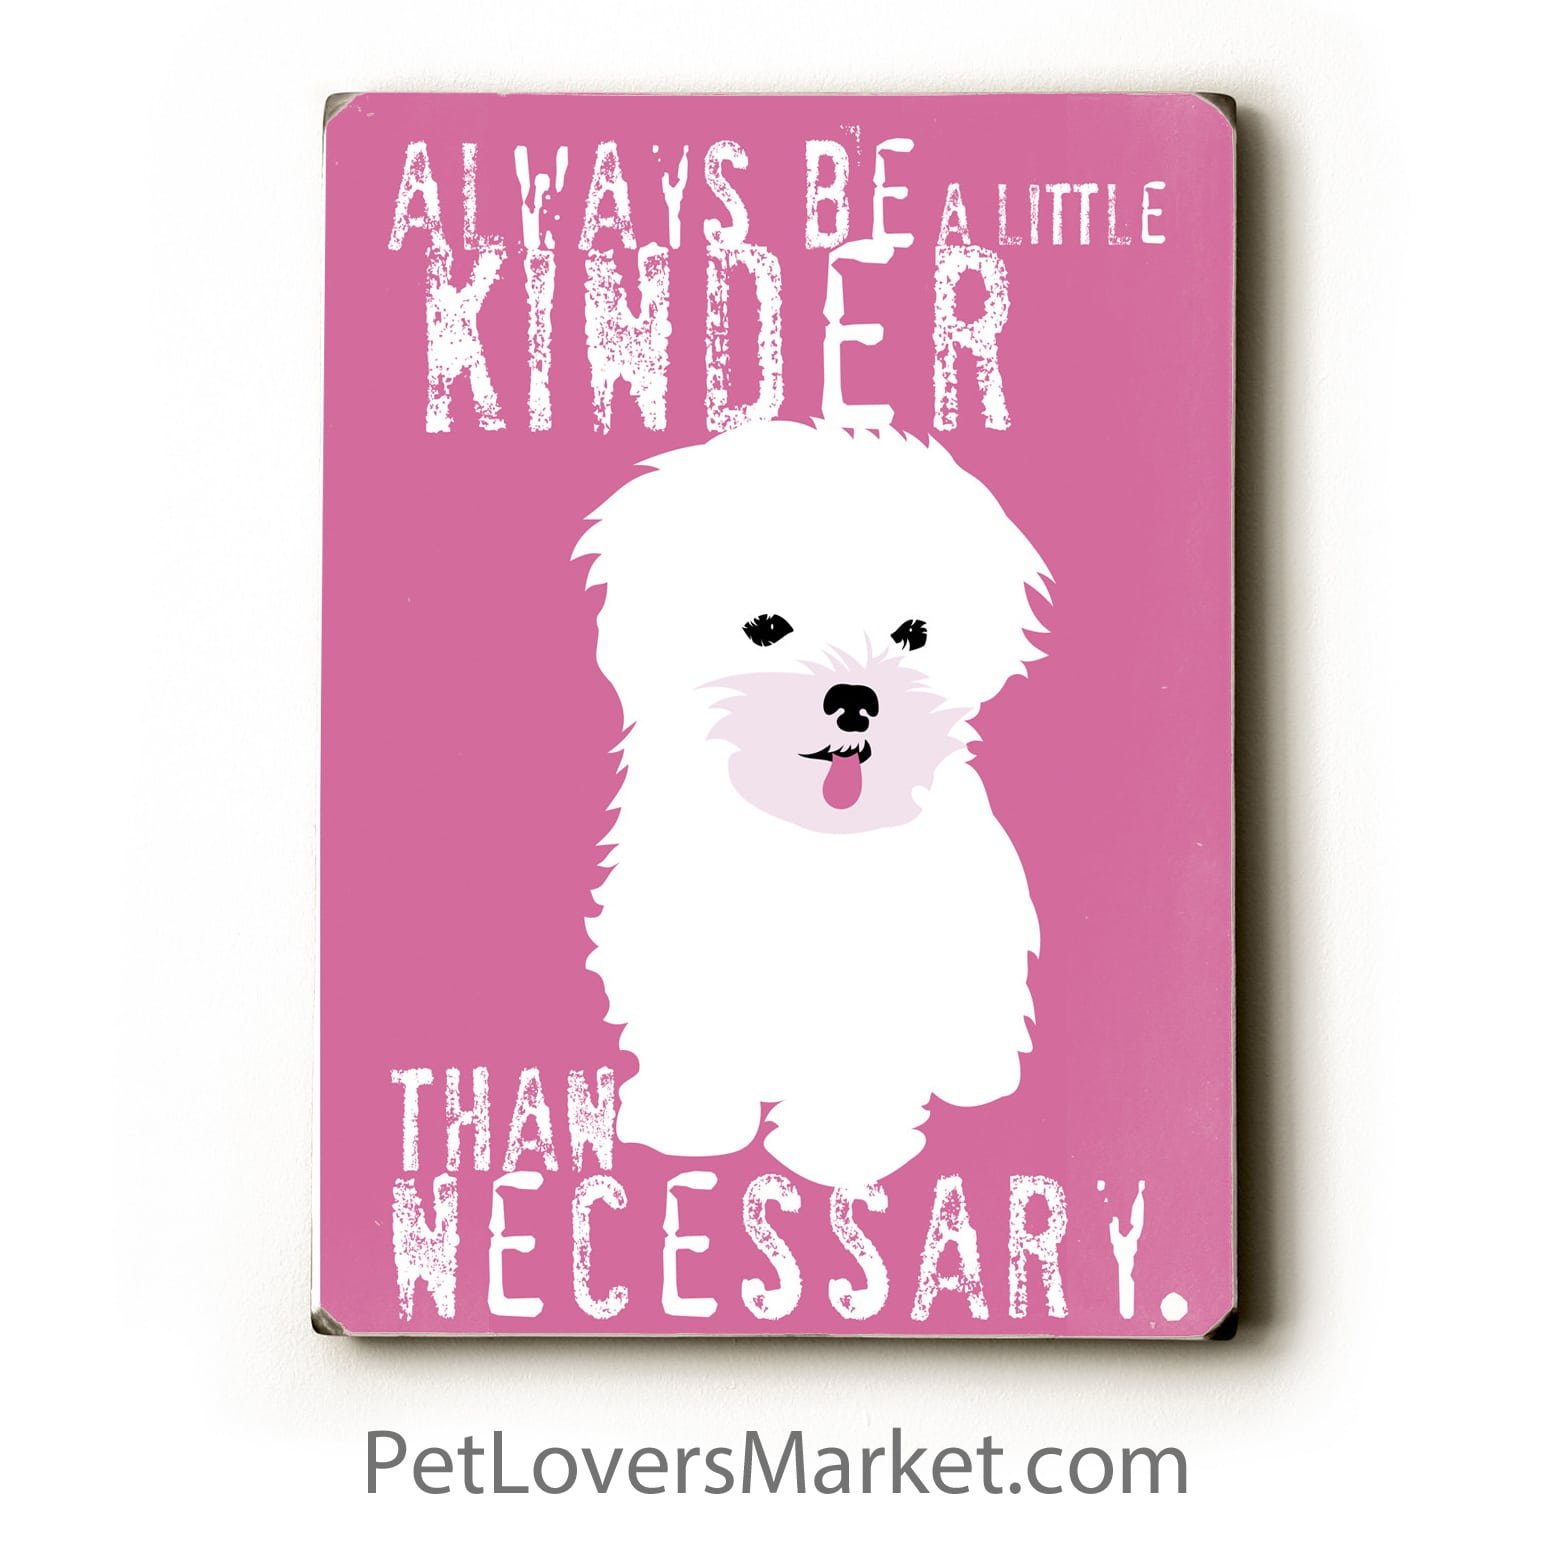 """Always Be a Little Kinder than Necessary."" Dog Signs with Inspirational Quotes. Gifts for Dog Lovers. Dog Print, Wooden Sign, Wall Art."